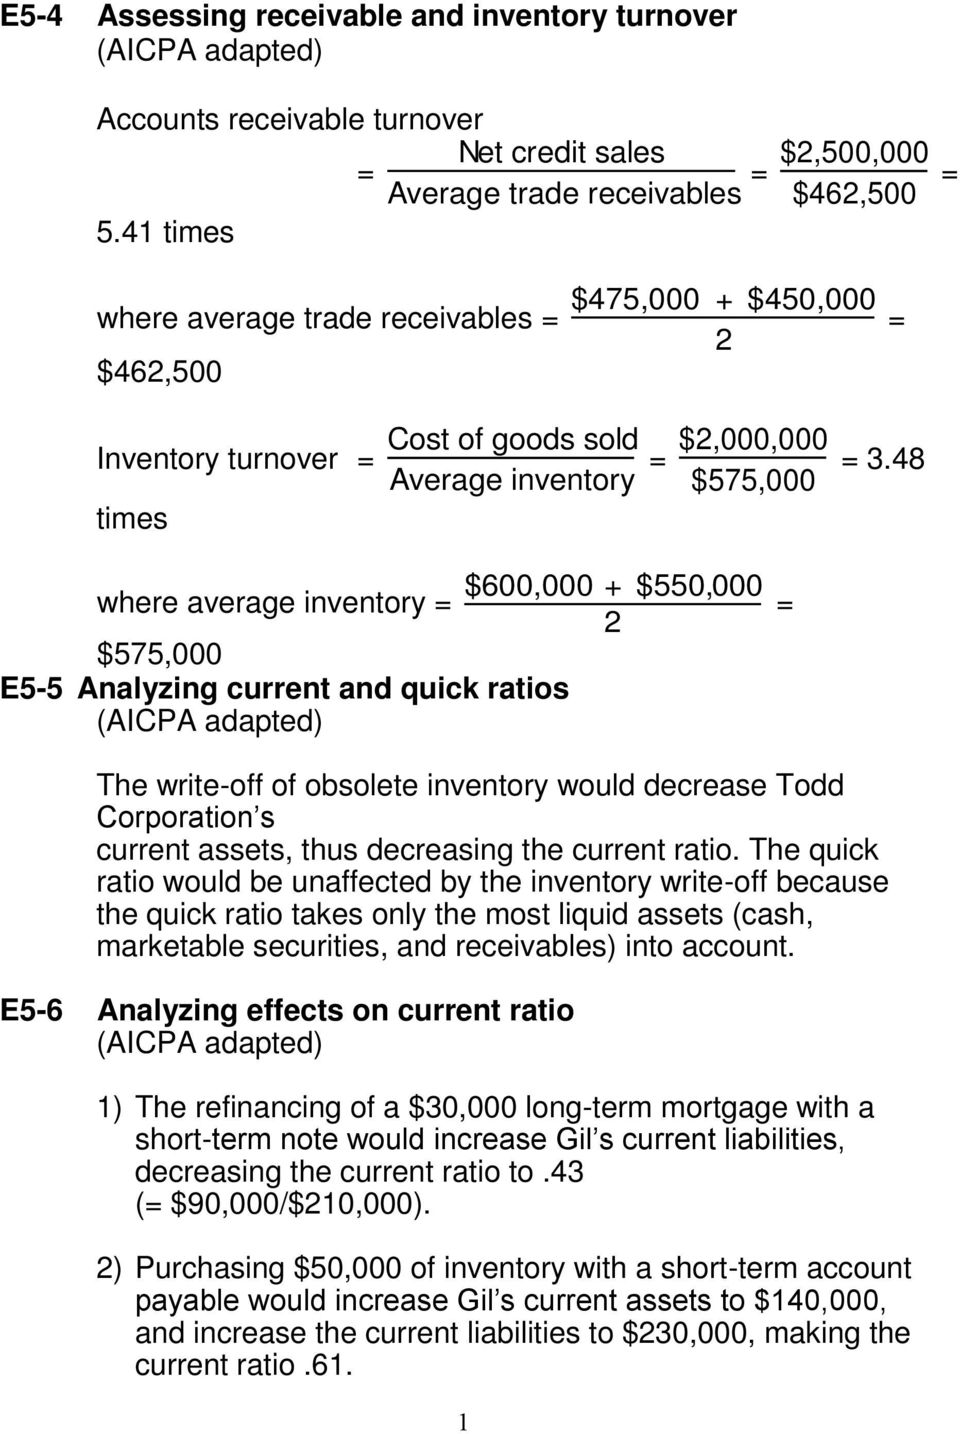 48 $600,000 + $550,000 where average inventory = 2 $575,000 E5-5 Analyzing current and quick ratios (AICPA adapted) = The write-off of obsolete inventory would decrease Todd Corporation s current